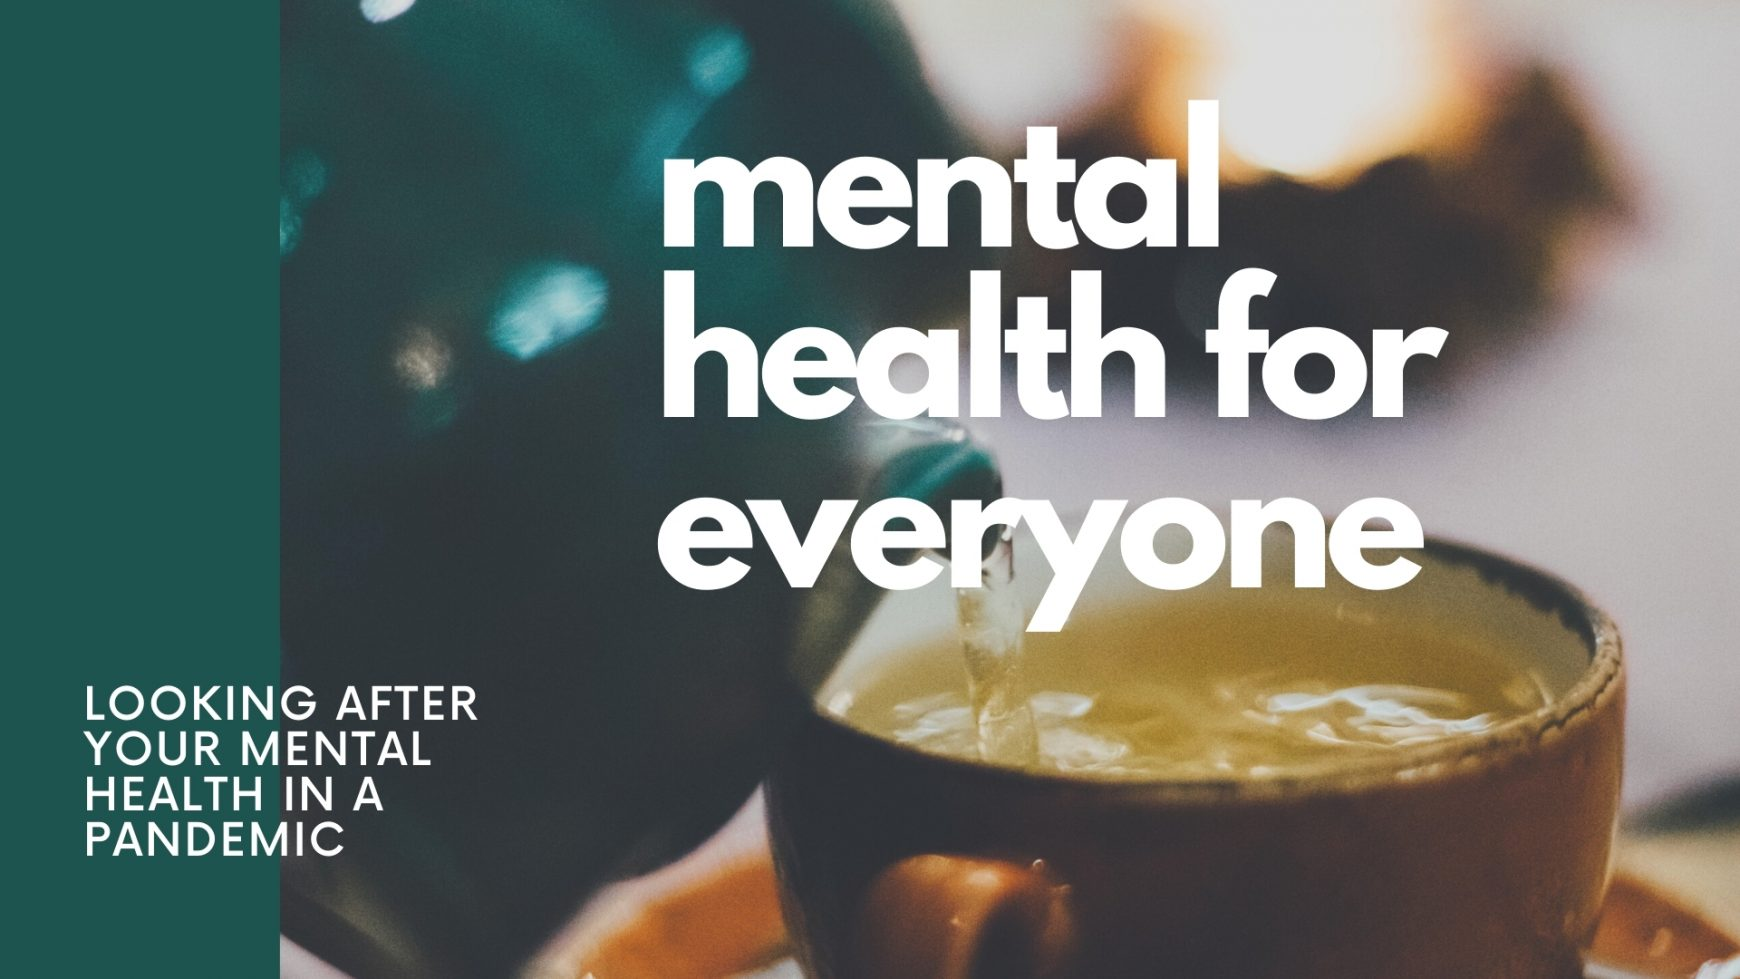 Everyone needs to look after their mental health